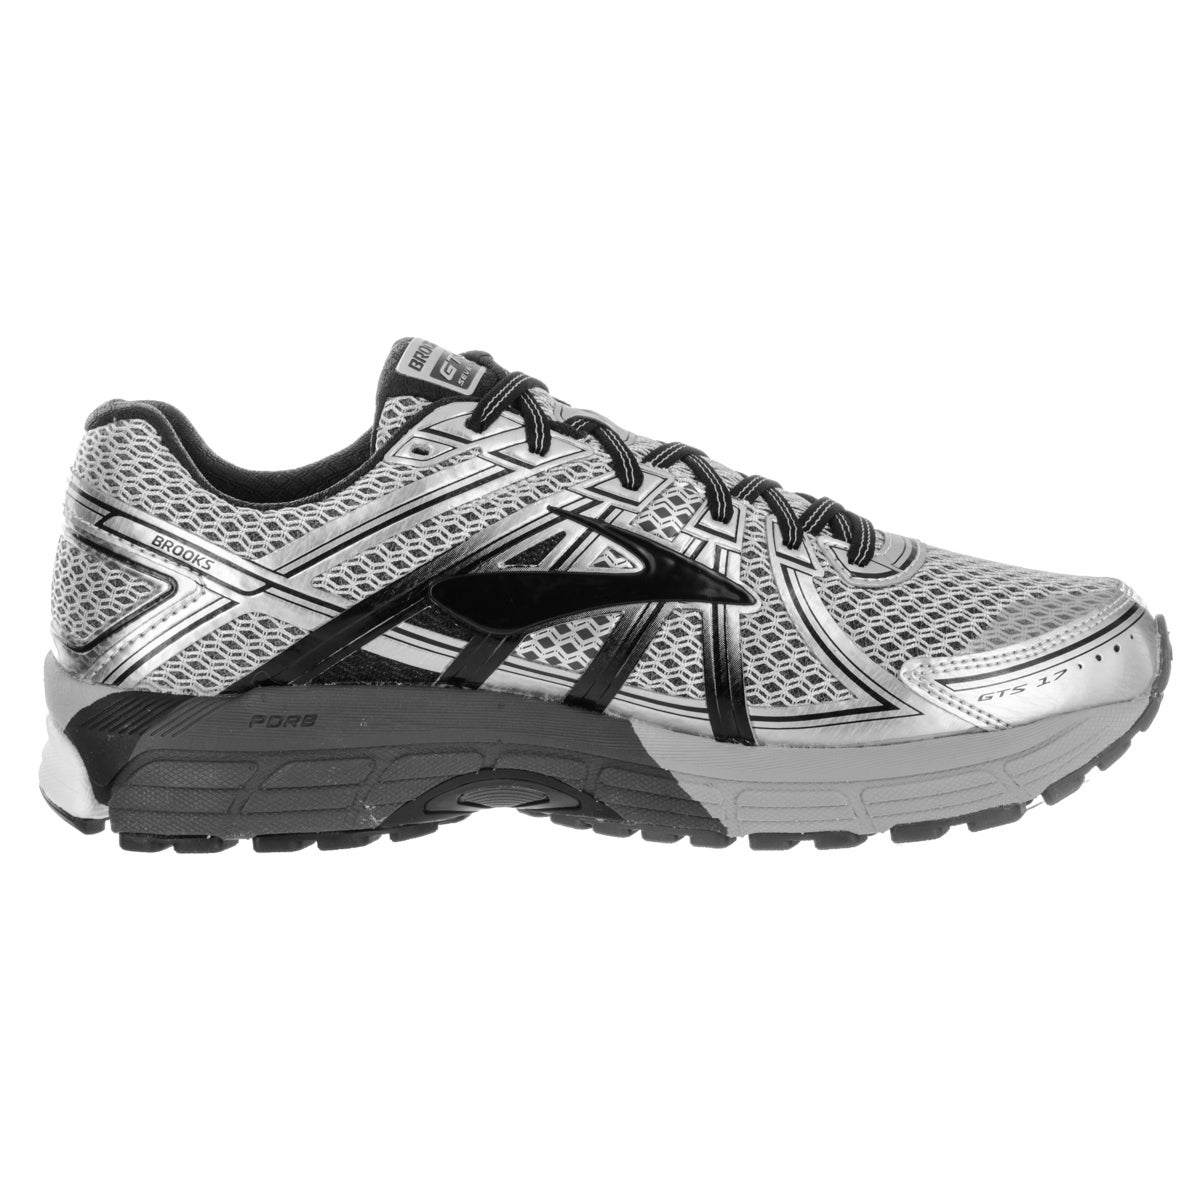 Shop Brooks Men s Adrenaline GTS 17 Silver Running Shoes - Free Shipping  Today - Overstock - 13620267 f43d91a736